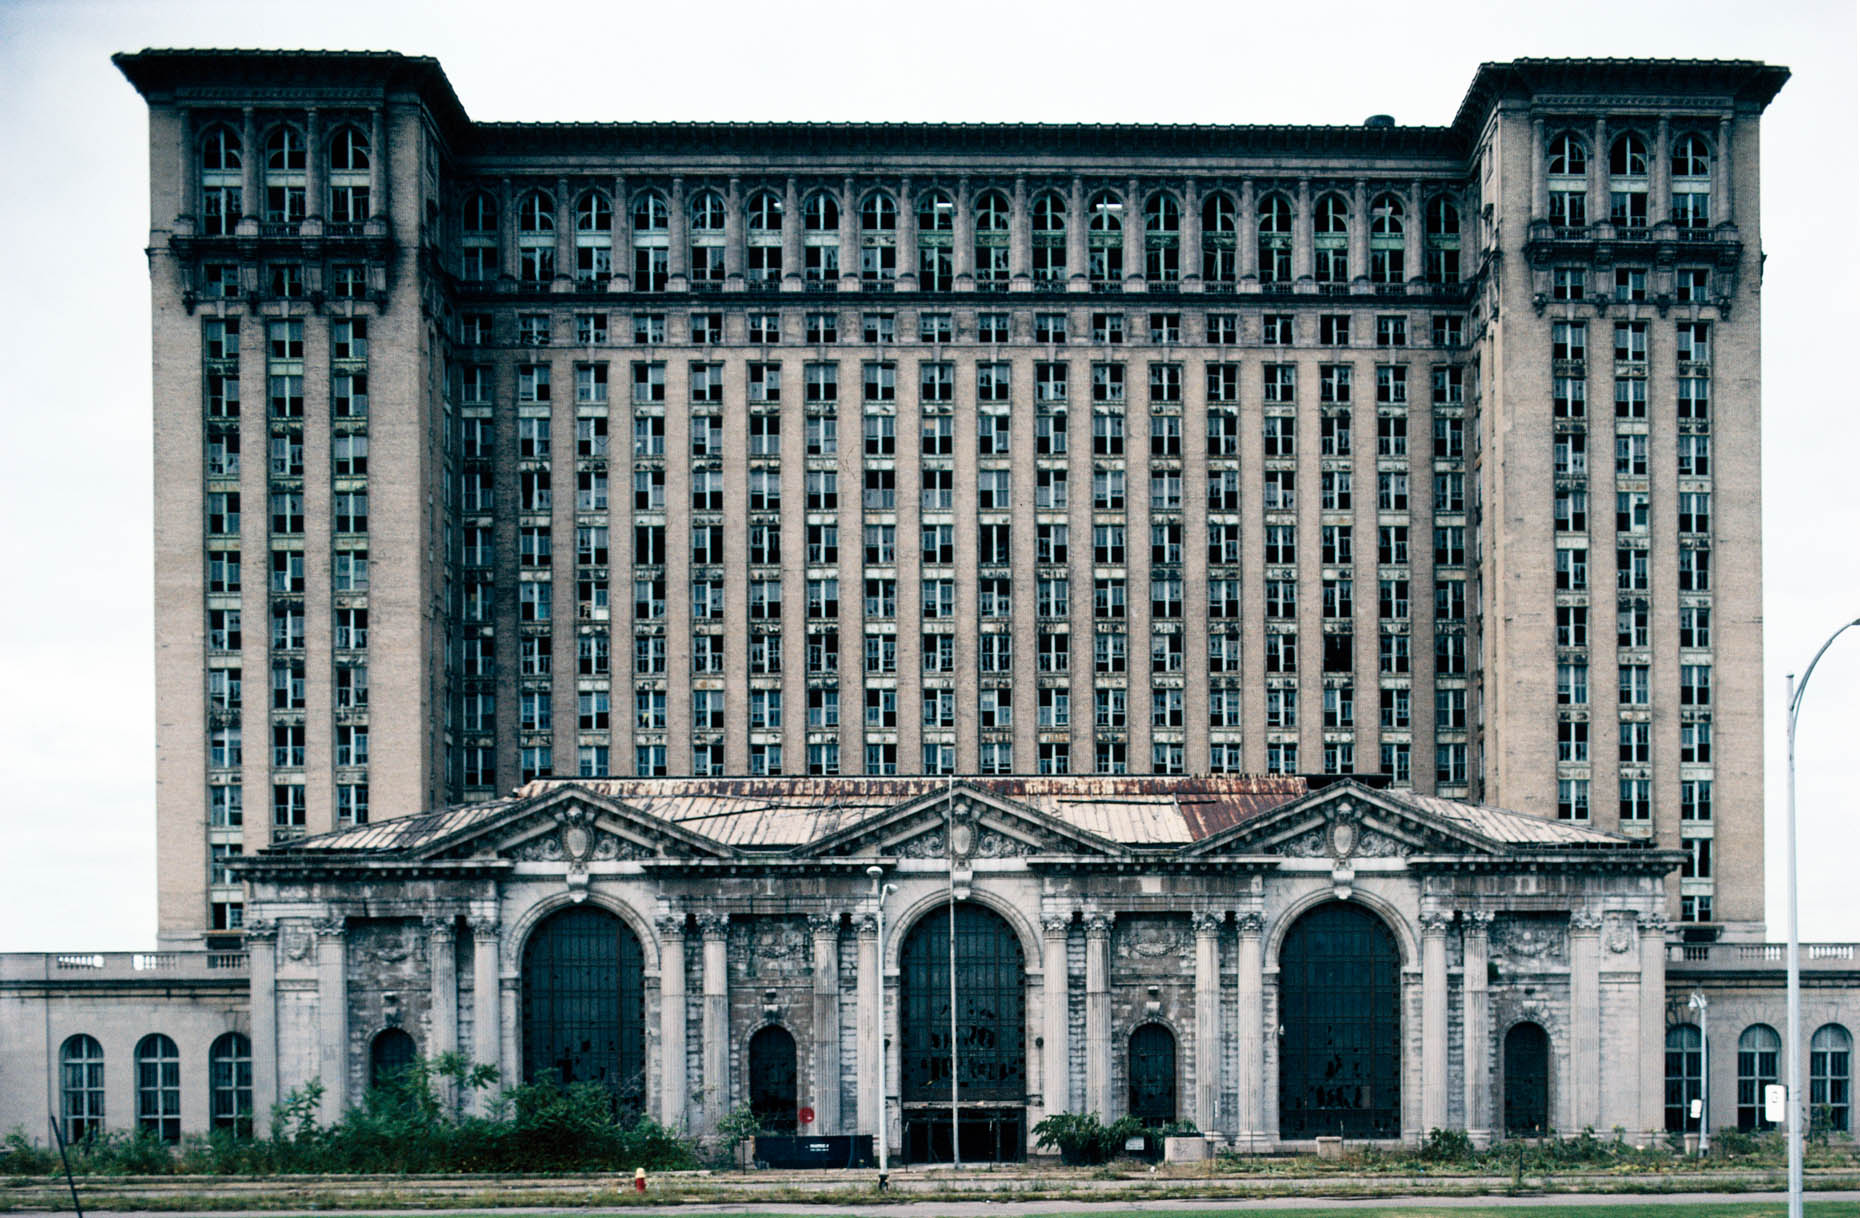 02_Former Michigan Central Railroad Station, Detroit, 1997_-DUP9.jpg